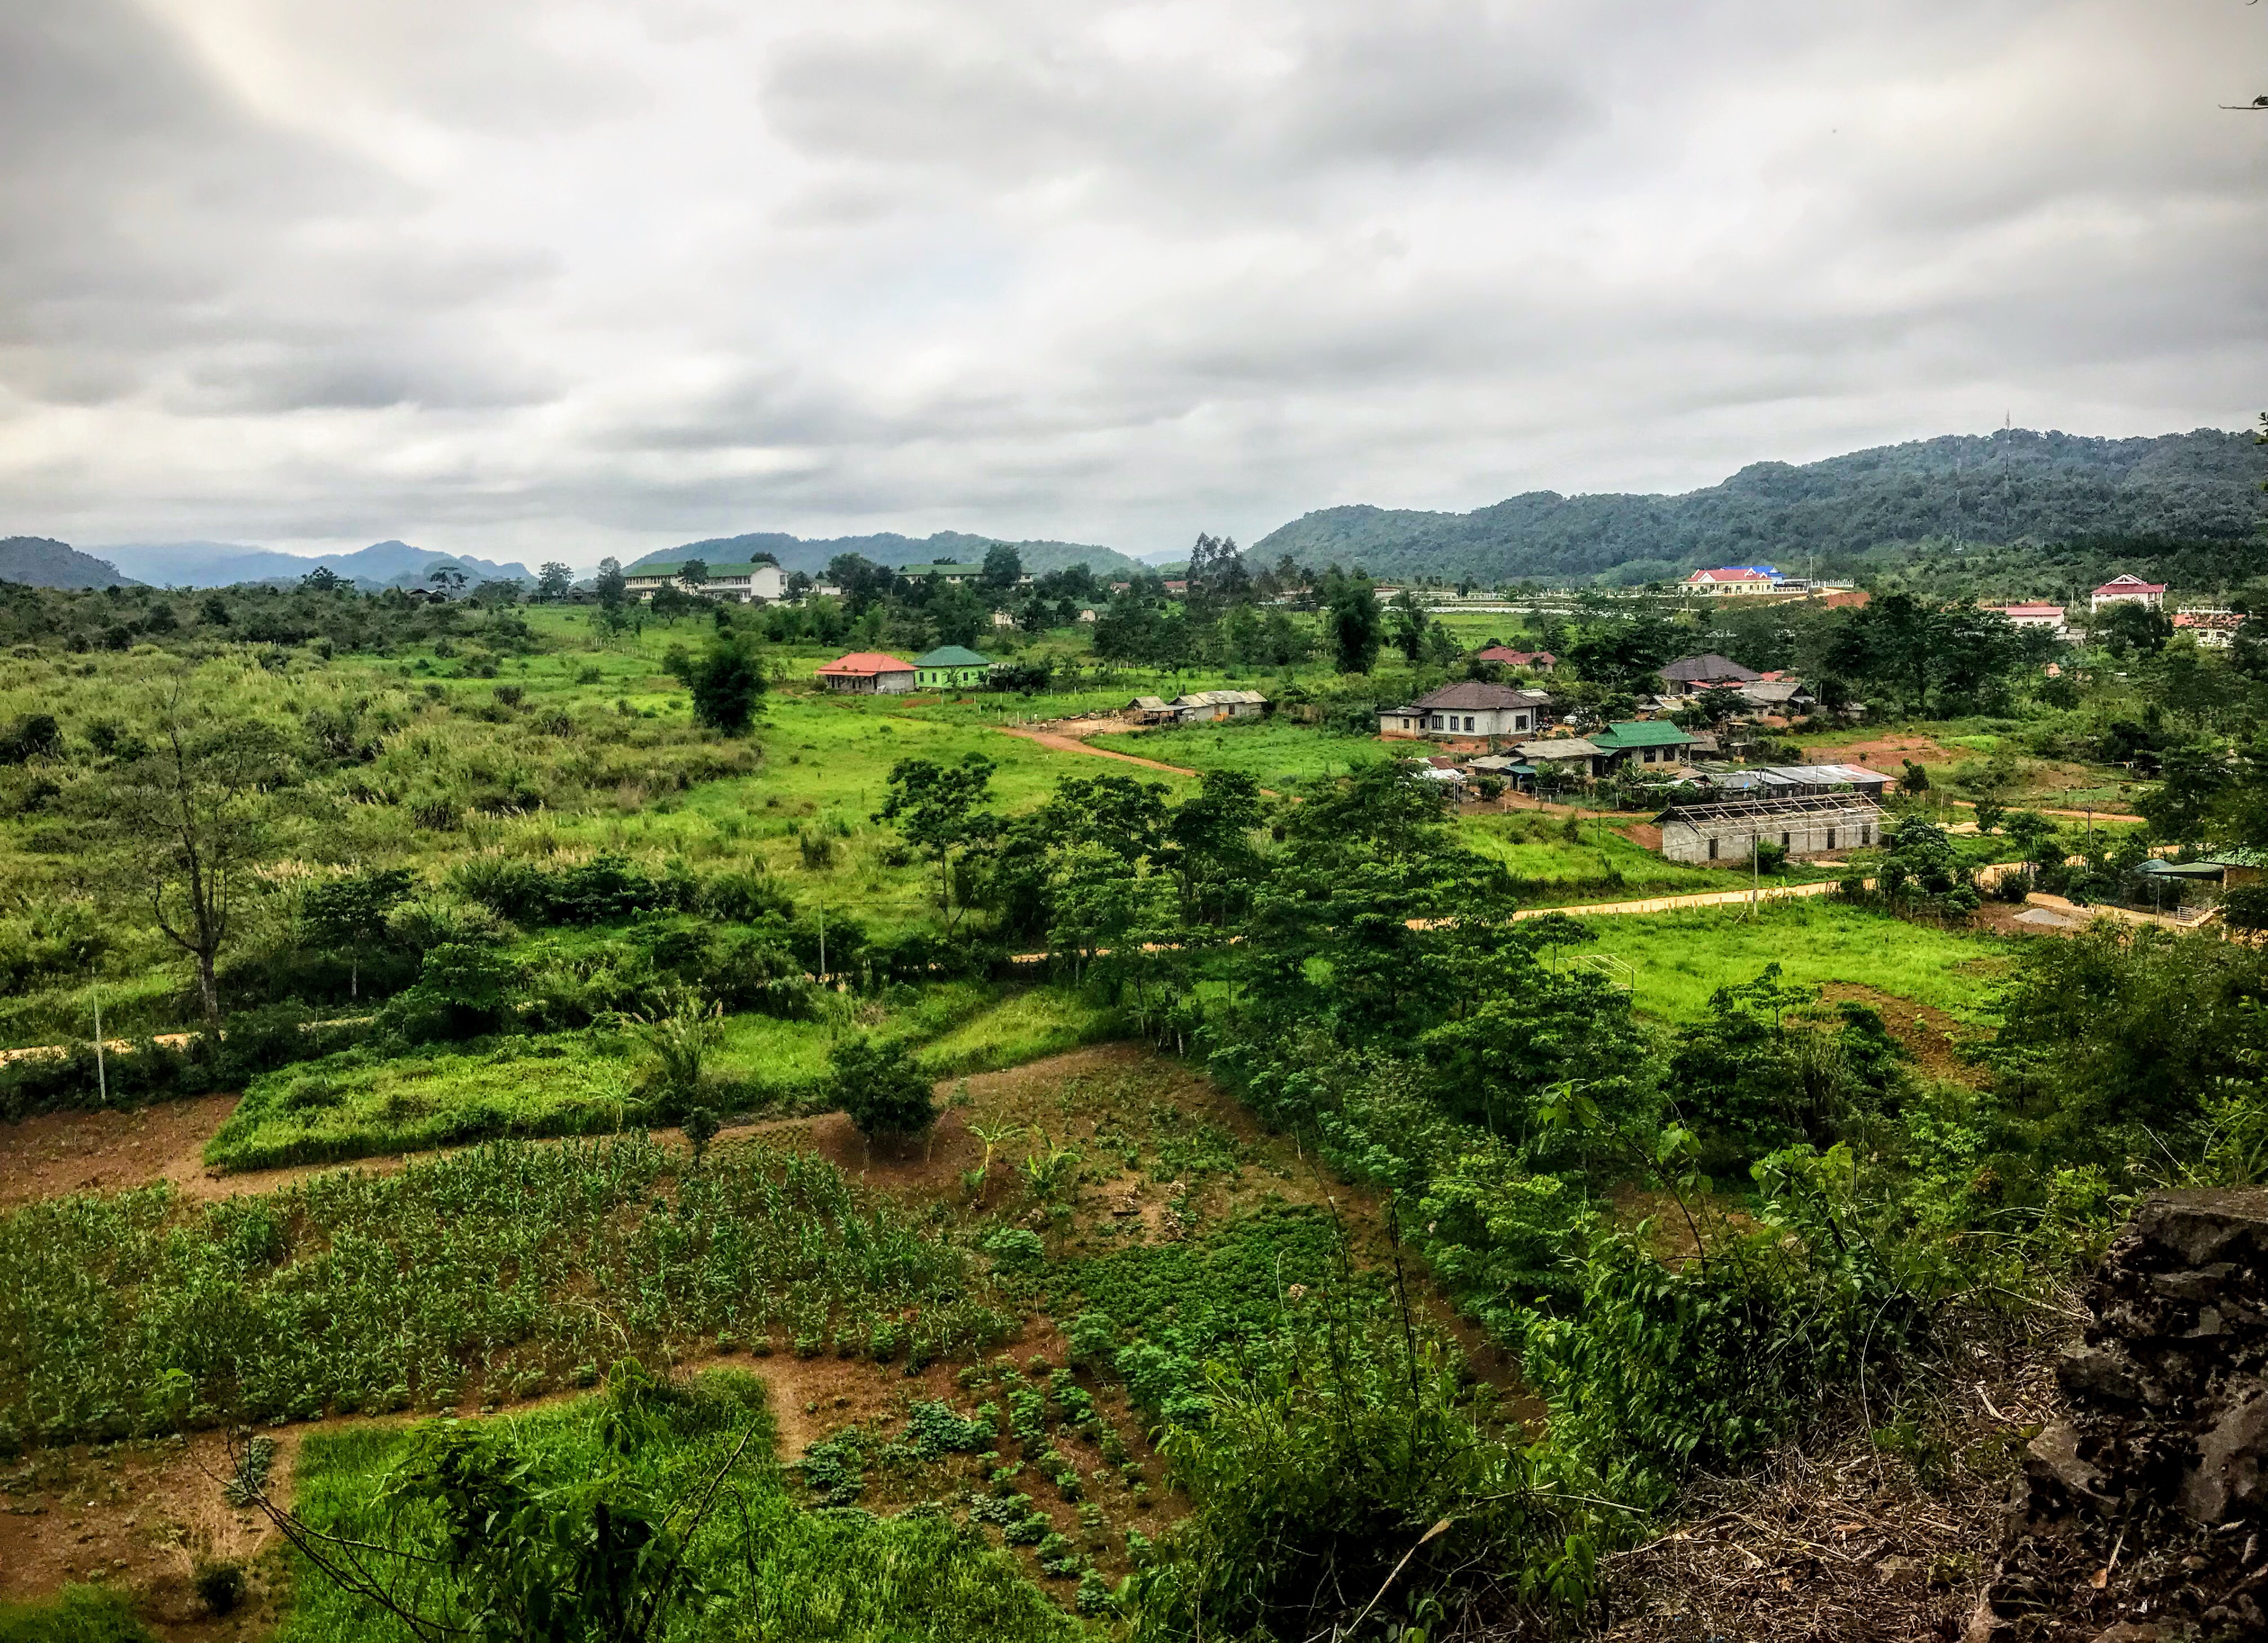 The view from the Vieng Xai caves, Laos